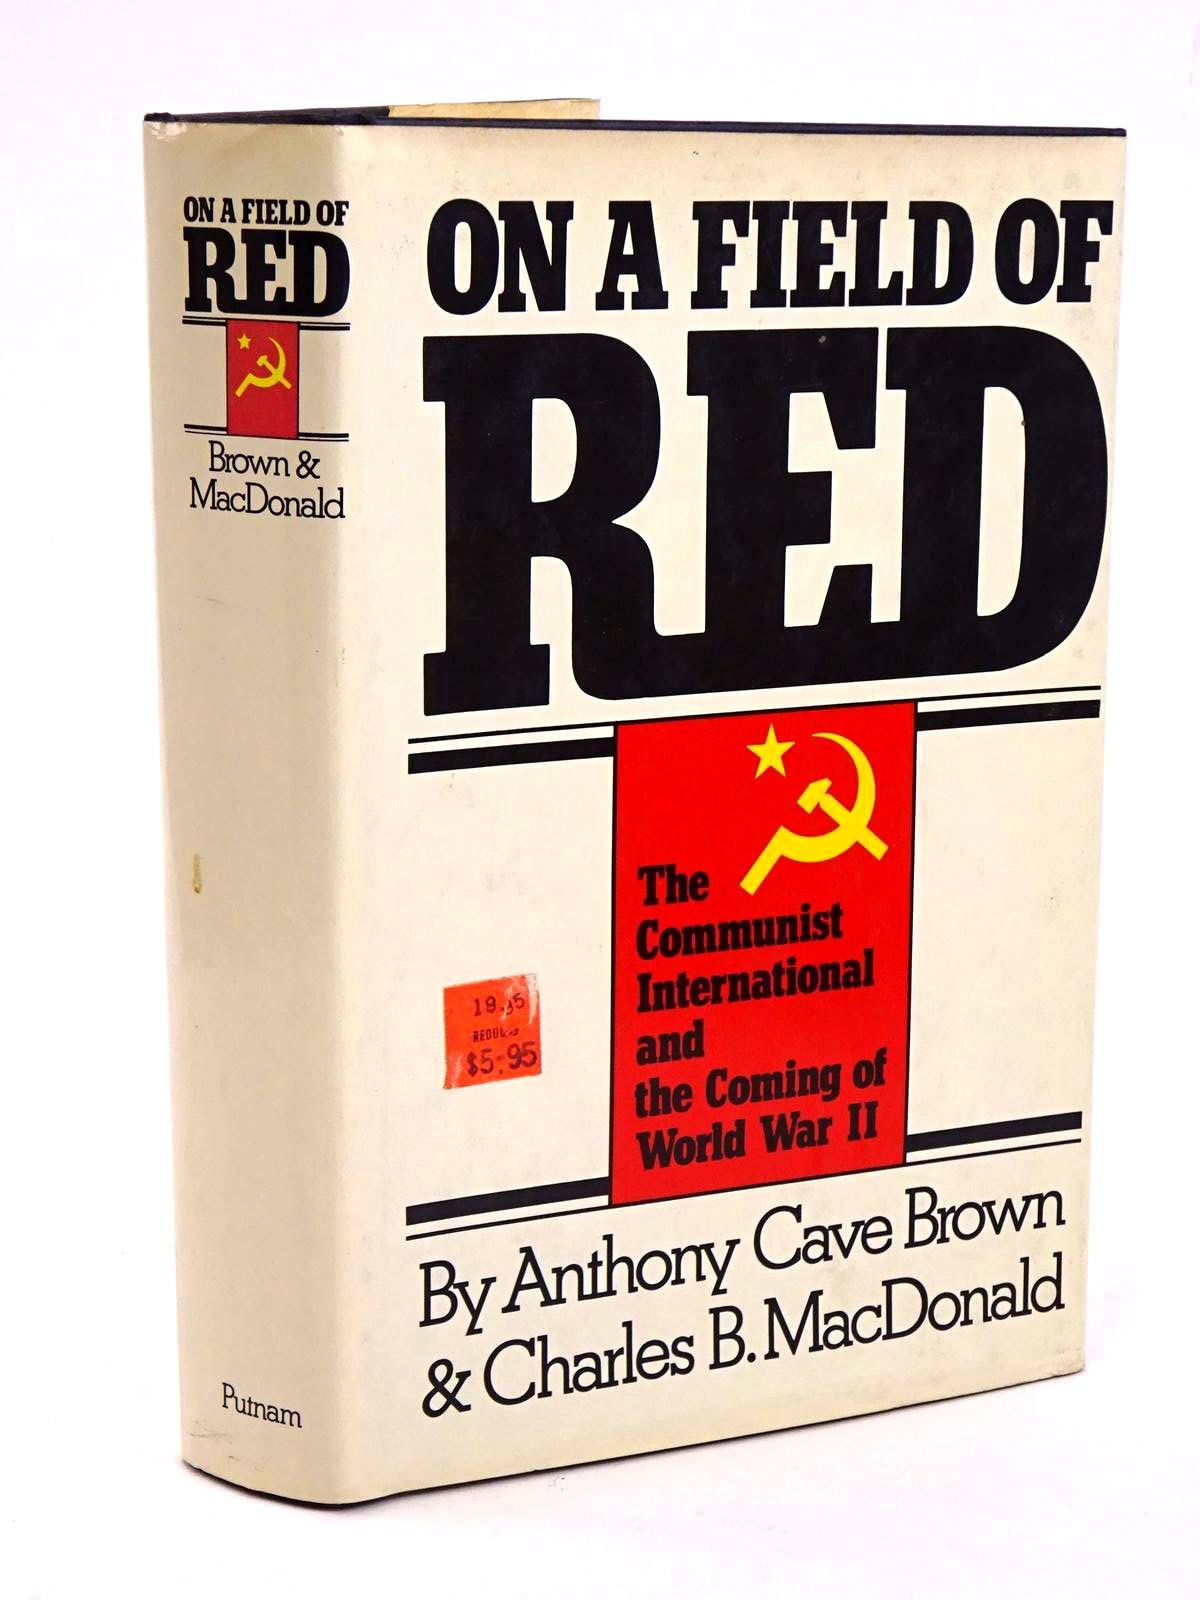 Photo of ON A FIELD OF RED: THE COMMUNIST INTERNATIONAL AND THE COMING OF WORLD WAR II written by Brown, Anthony Cave MacDonald, Charles B. published by G.P. Putnam's Sons (STOCK CODE: 1818241)  for sale by Stella & Rose's Books